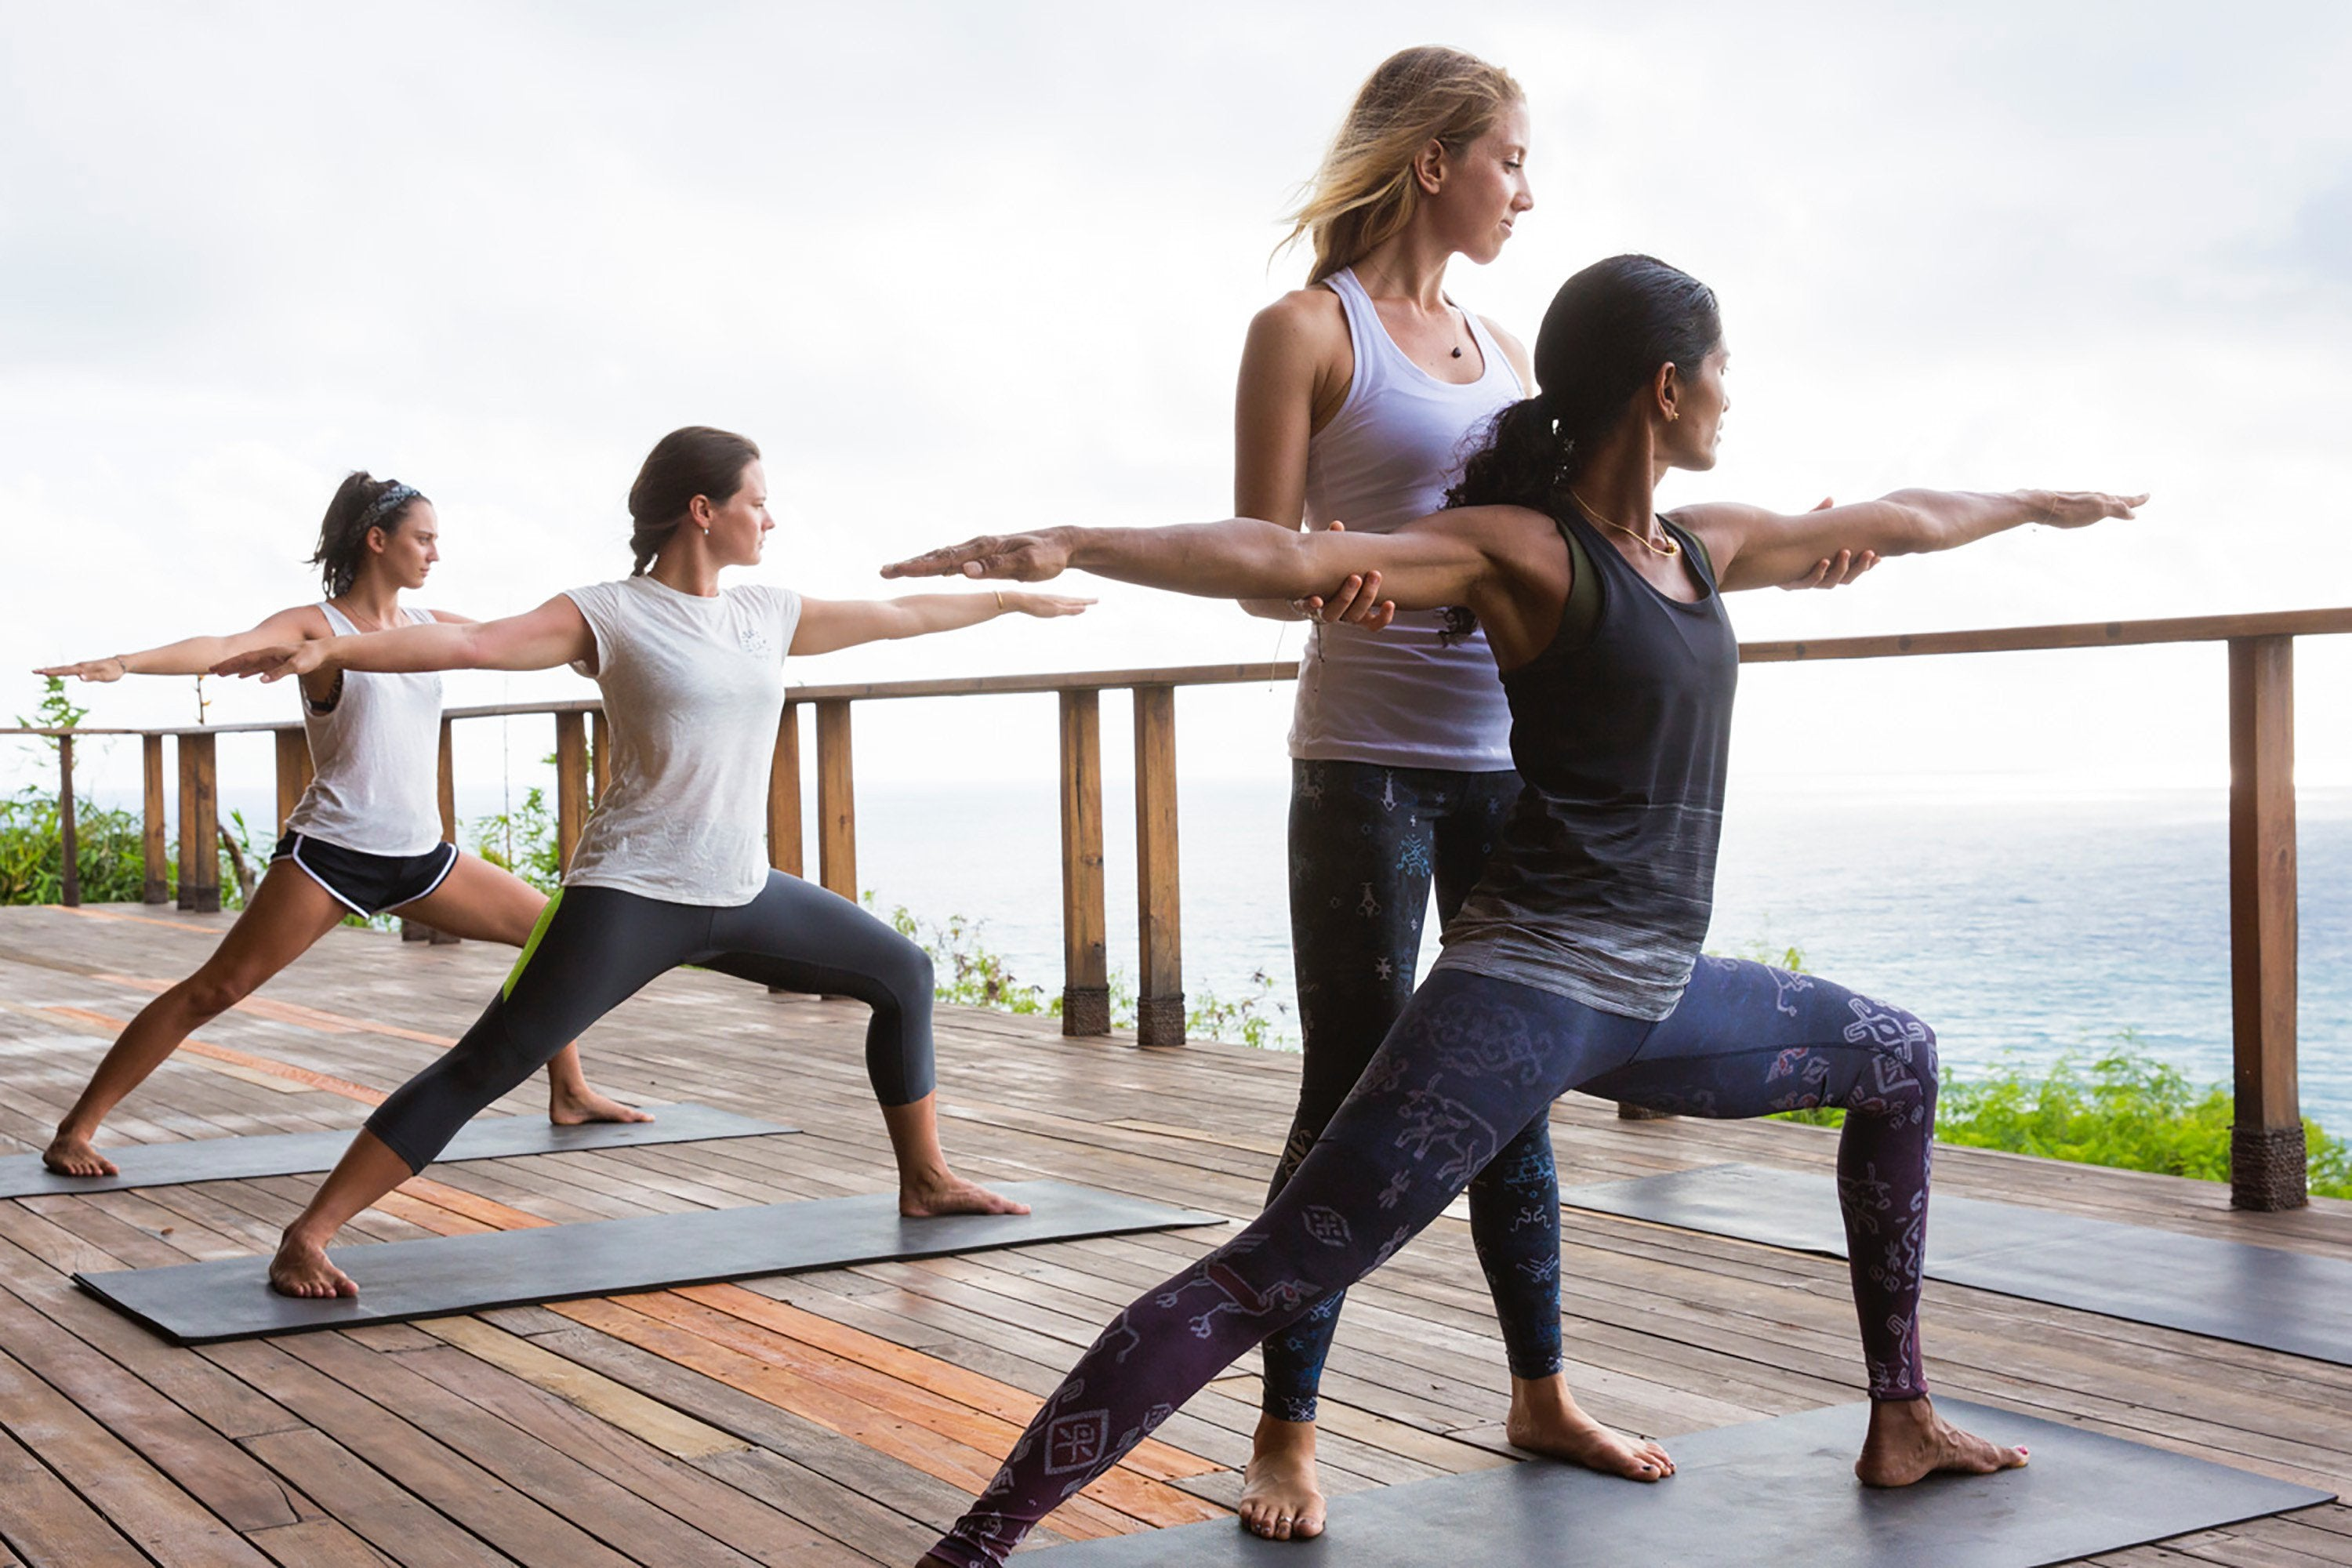 Yoga, Experience the best waves of your life in style